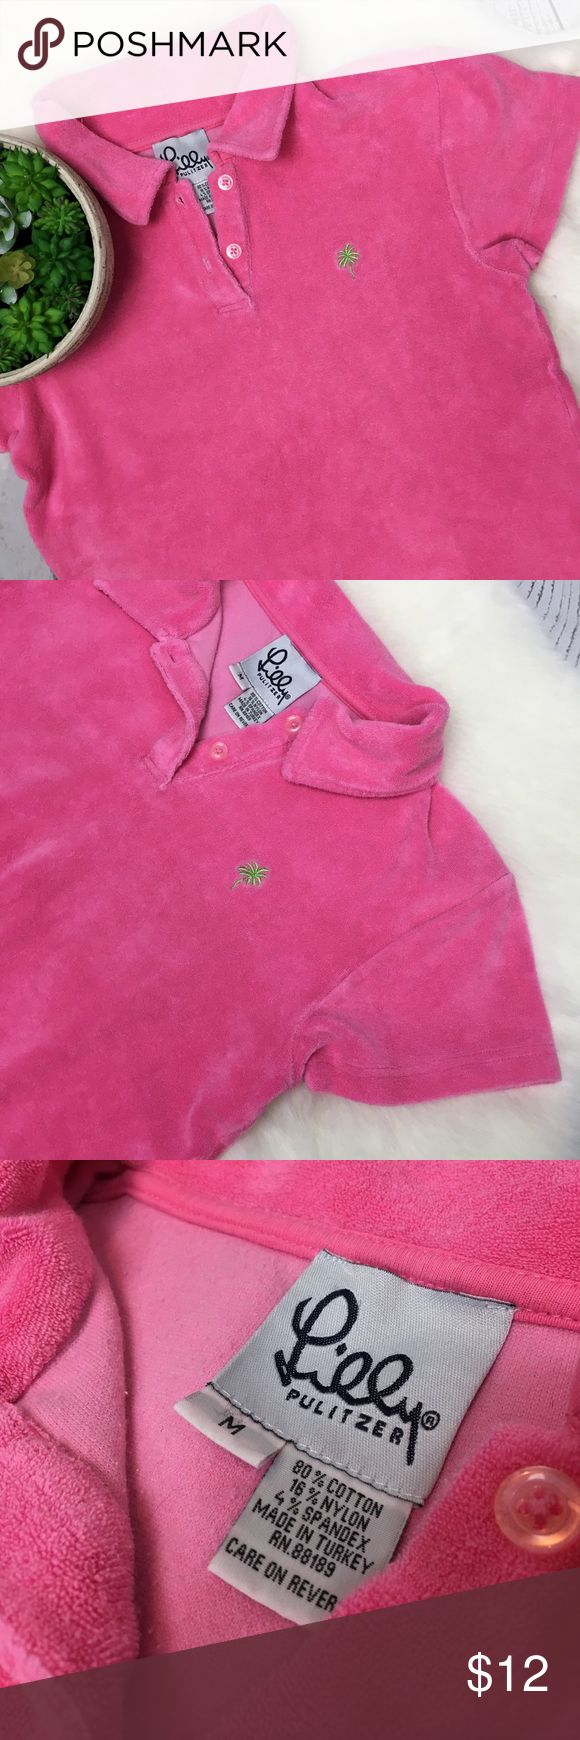 """• Vintage • Lilly Pulitzer PINK Terry Cloth Top M Adorable!!! Bright Pink Lilly Pulitzer Terry Cloth Collared Shirt Size Medium. Fits more as a small. Perfect summer piece!! Great top for the pool or boat! Signature green LP palm tree on chest. Smoke free home in lovely condition!! Measures approximately 17"""" armpit to armpit, 20.5"""" shoulder to bottom front & 21.5"""" shoulder to bottom back. • Bundle & SAVE • Lilly Pulitzer Tops"""